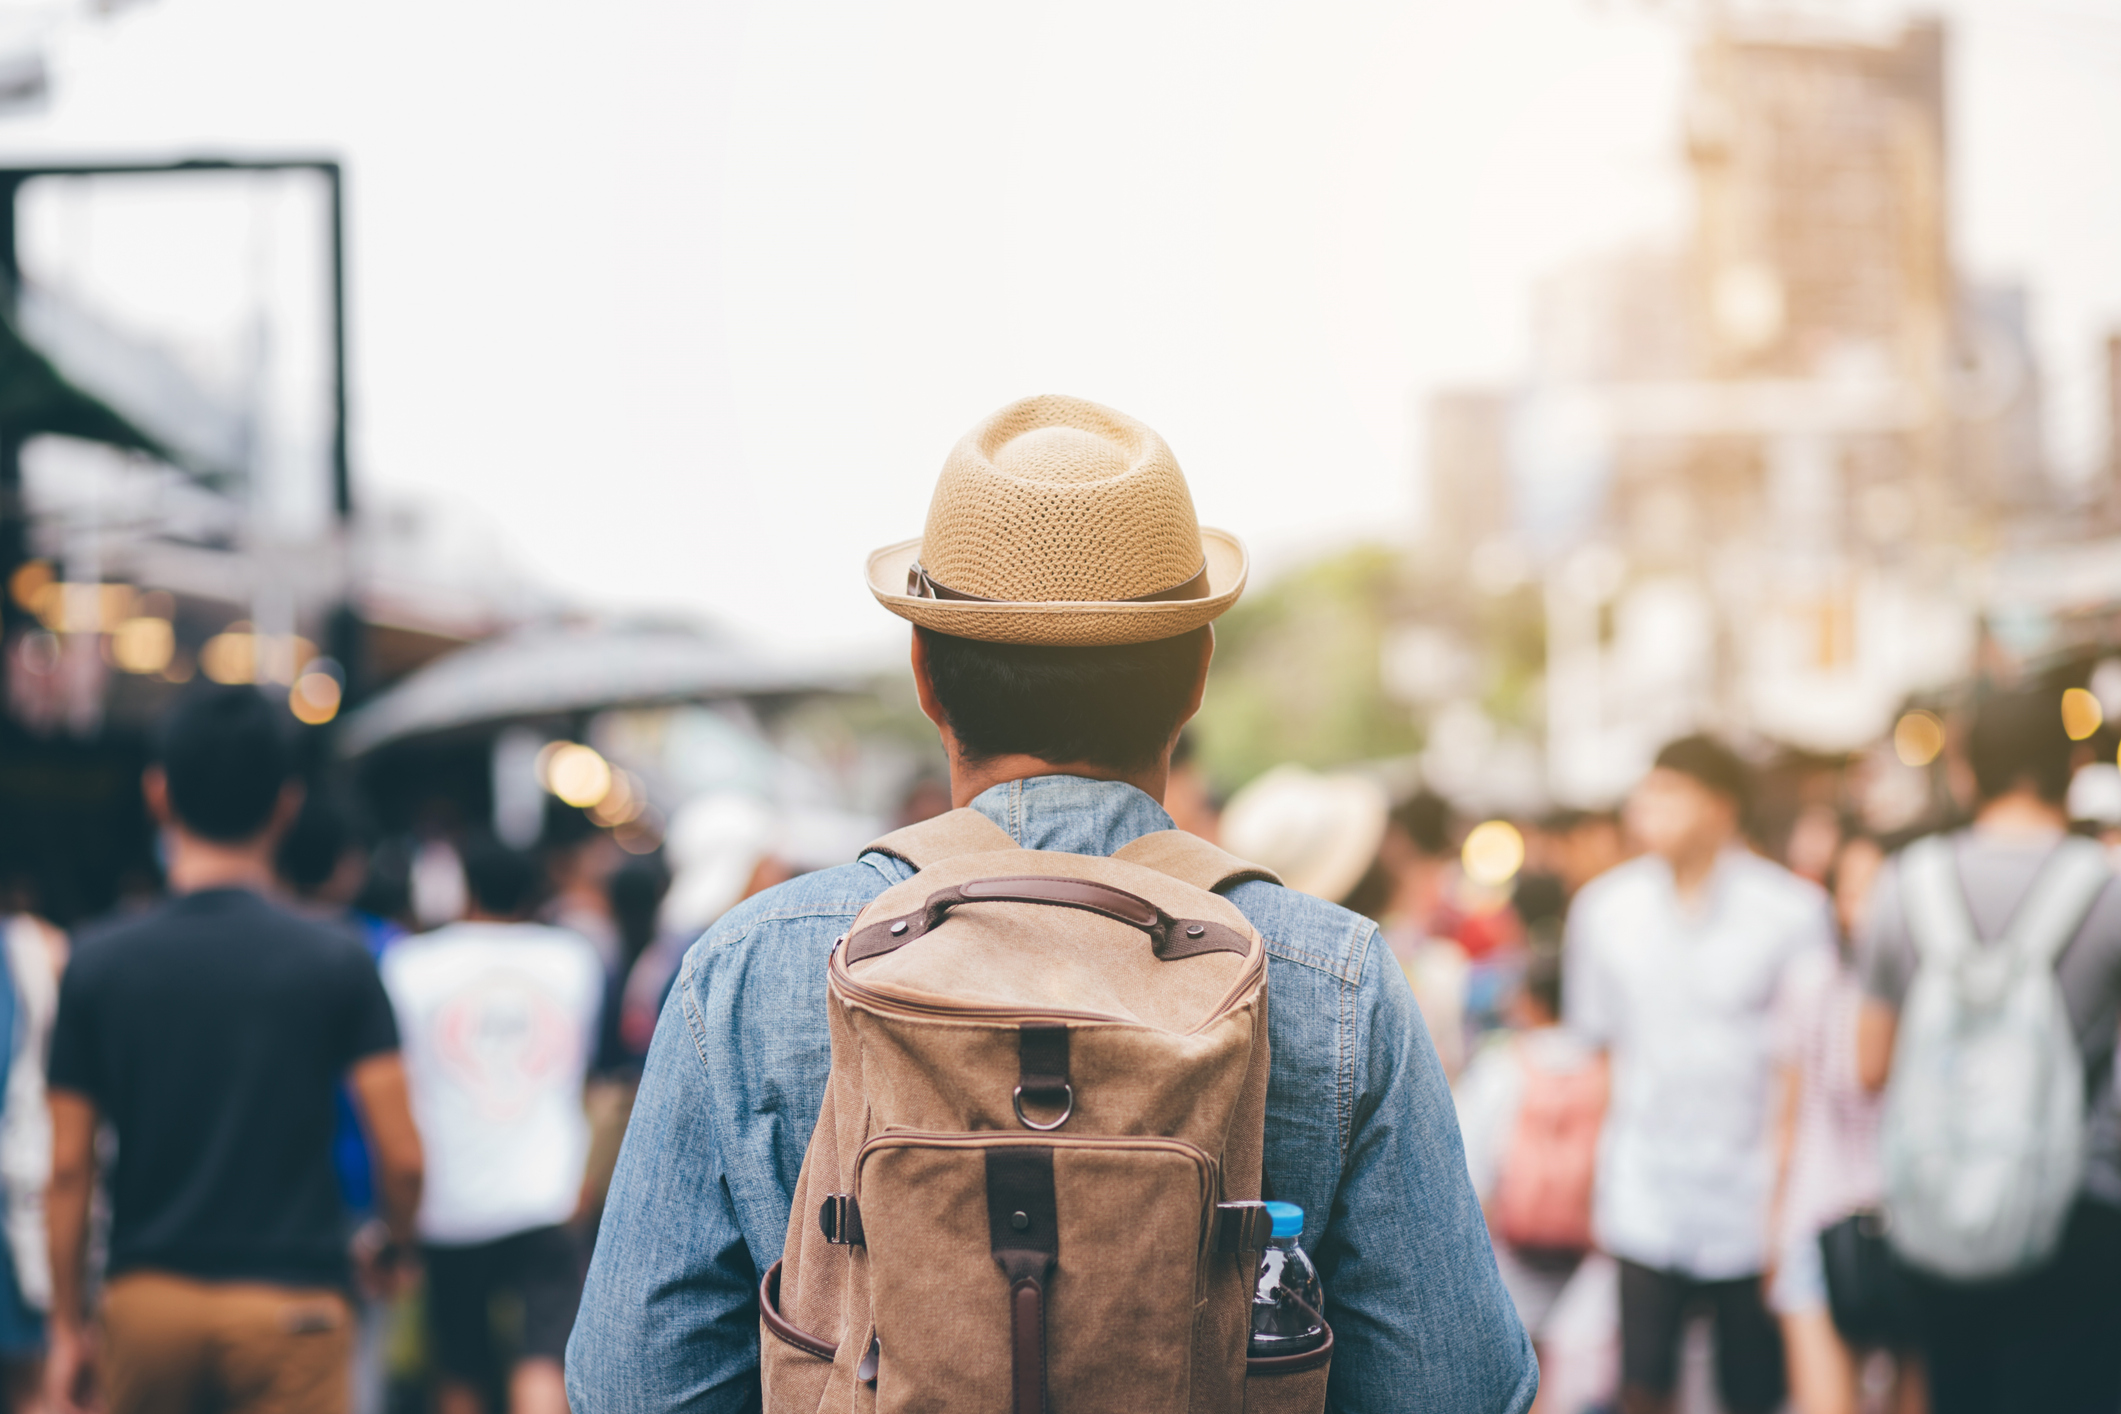 Man in backpack and straw hat facing away while walking into throng of locals in exotic locale.